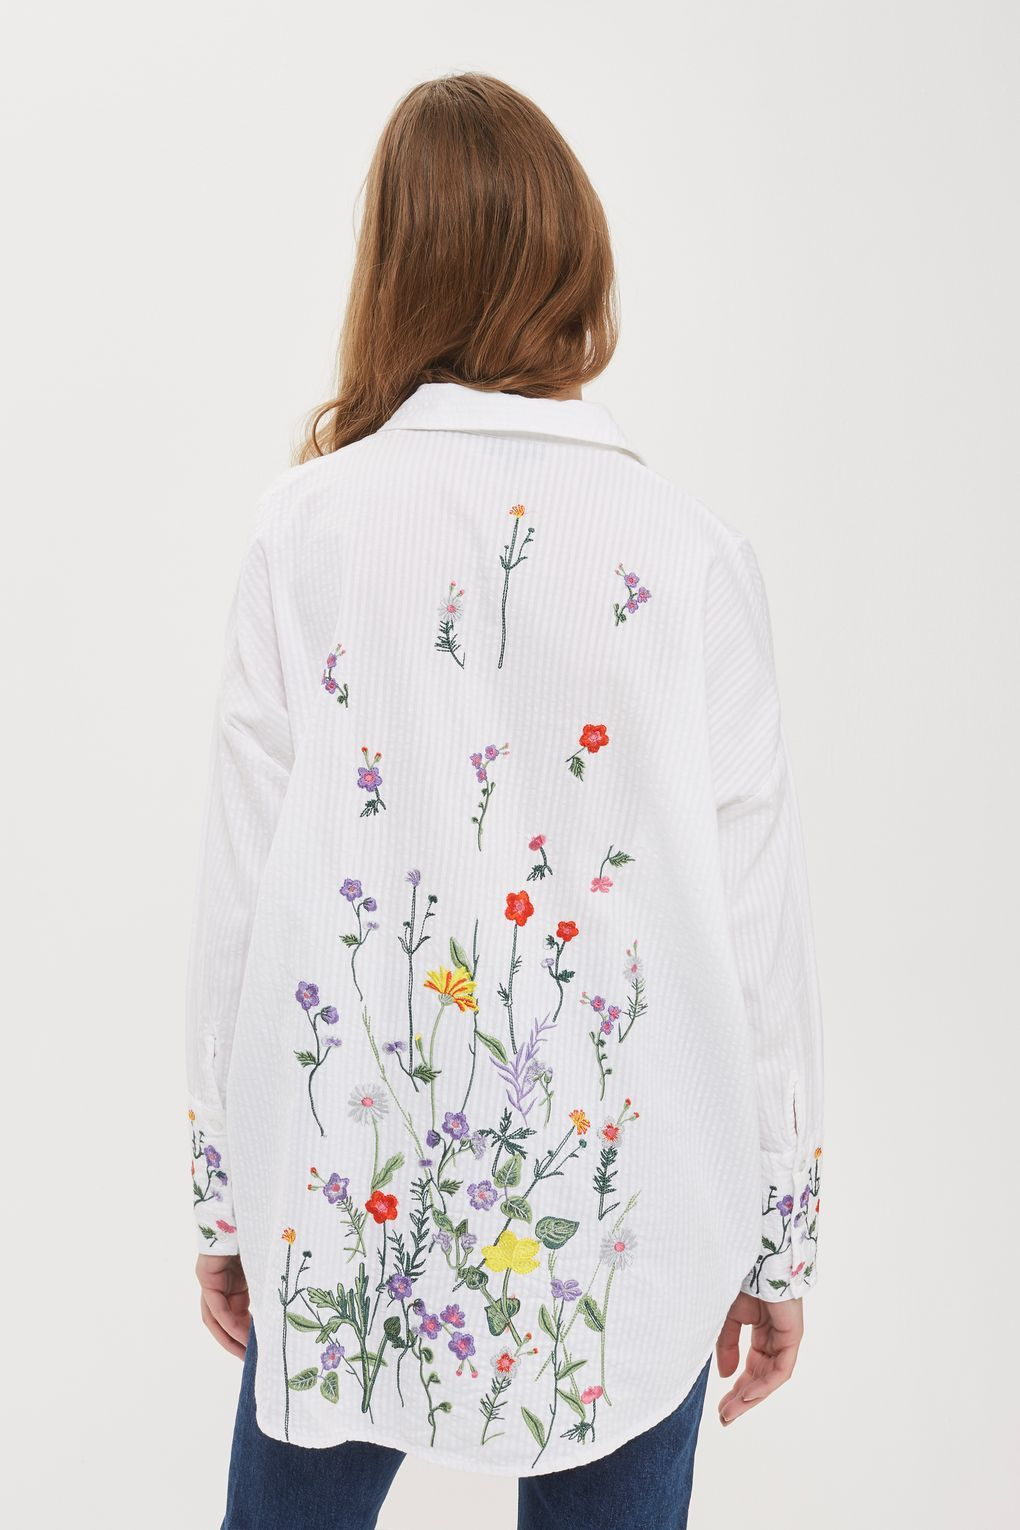 38d9733e2 Floral Embroidered Shirt | Embroidery | Embroidered blouse ...